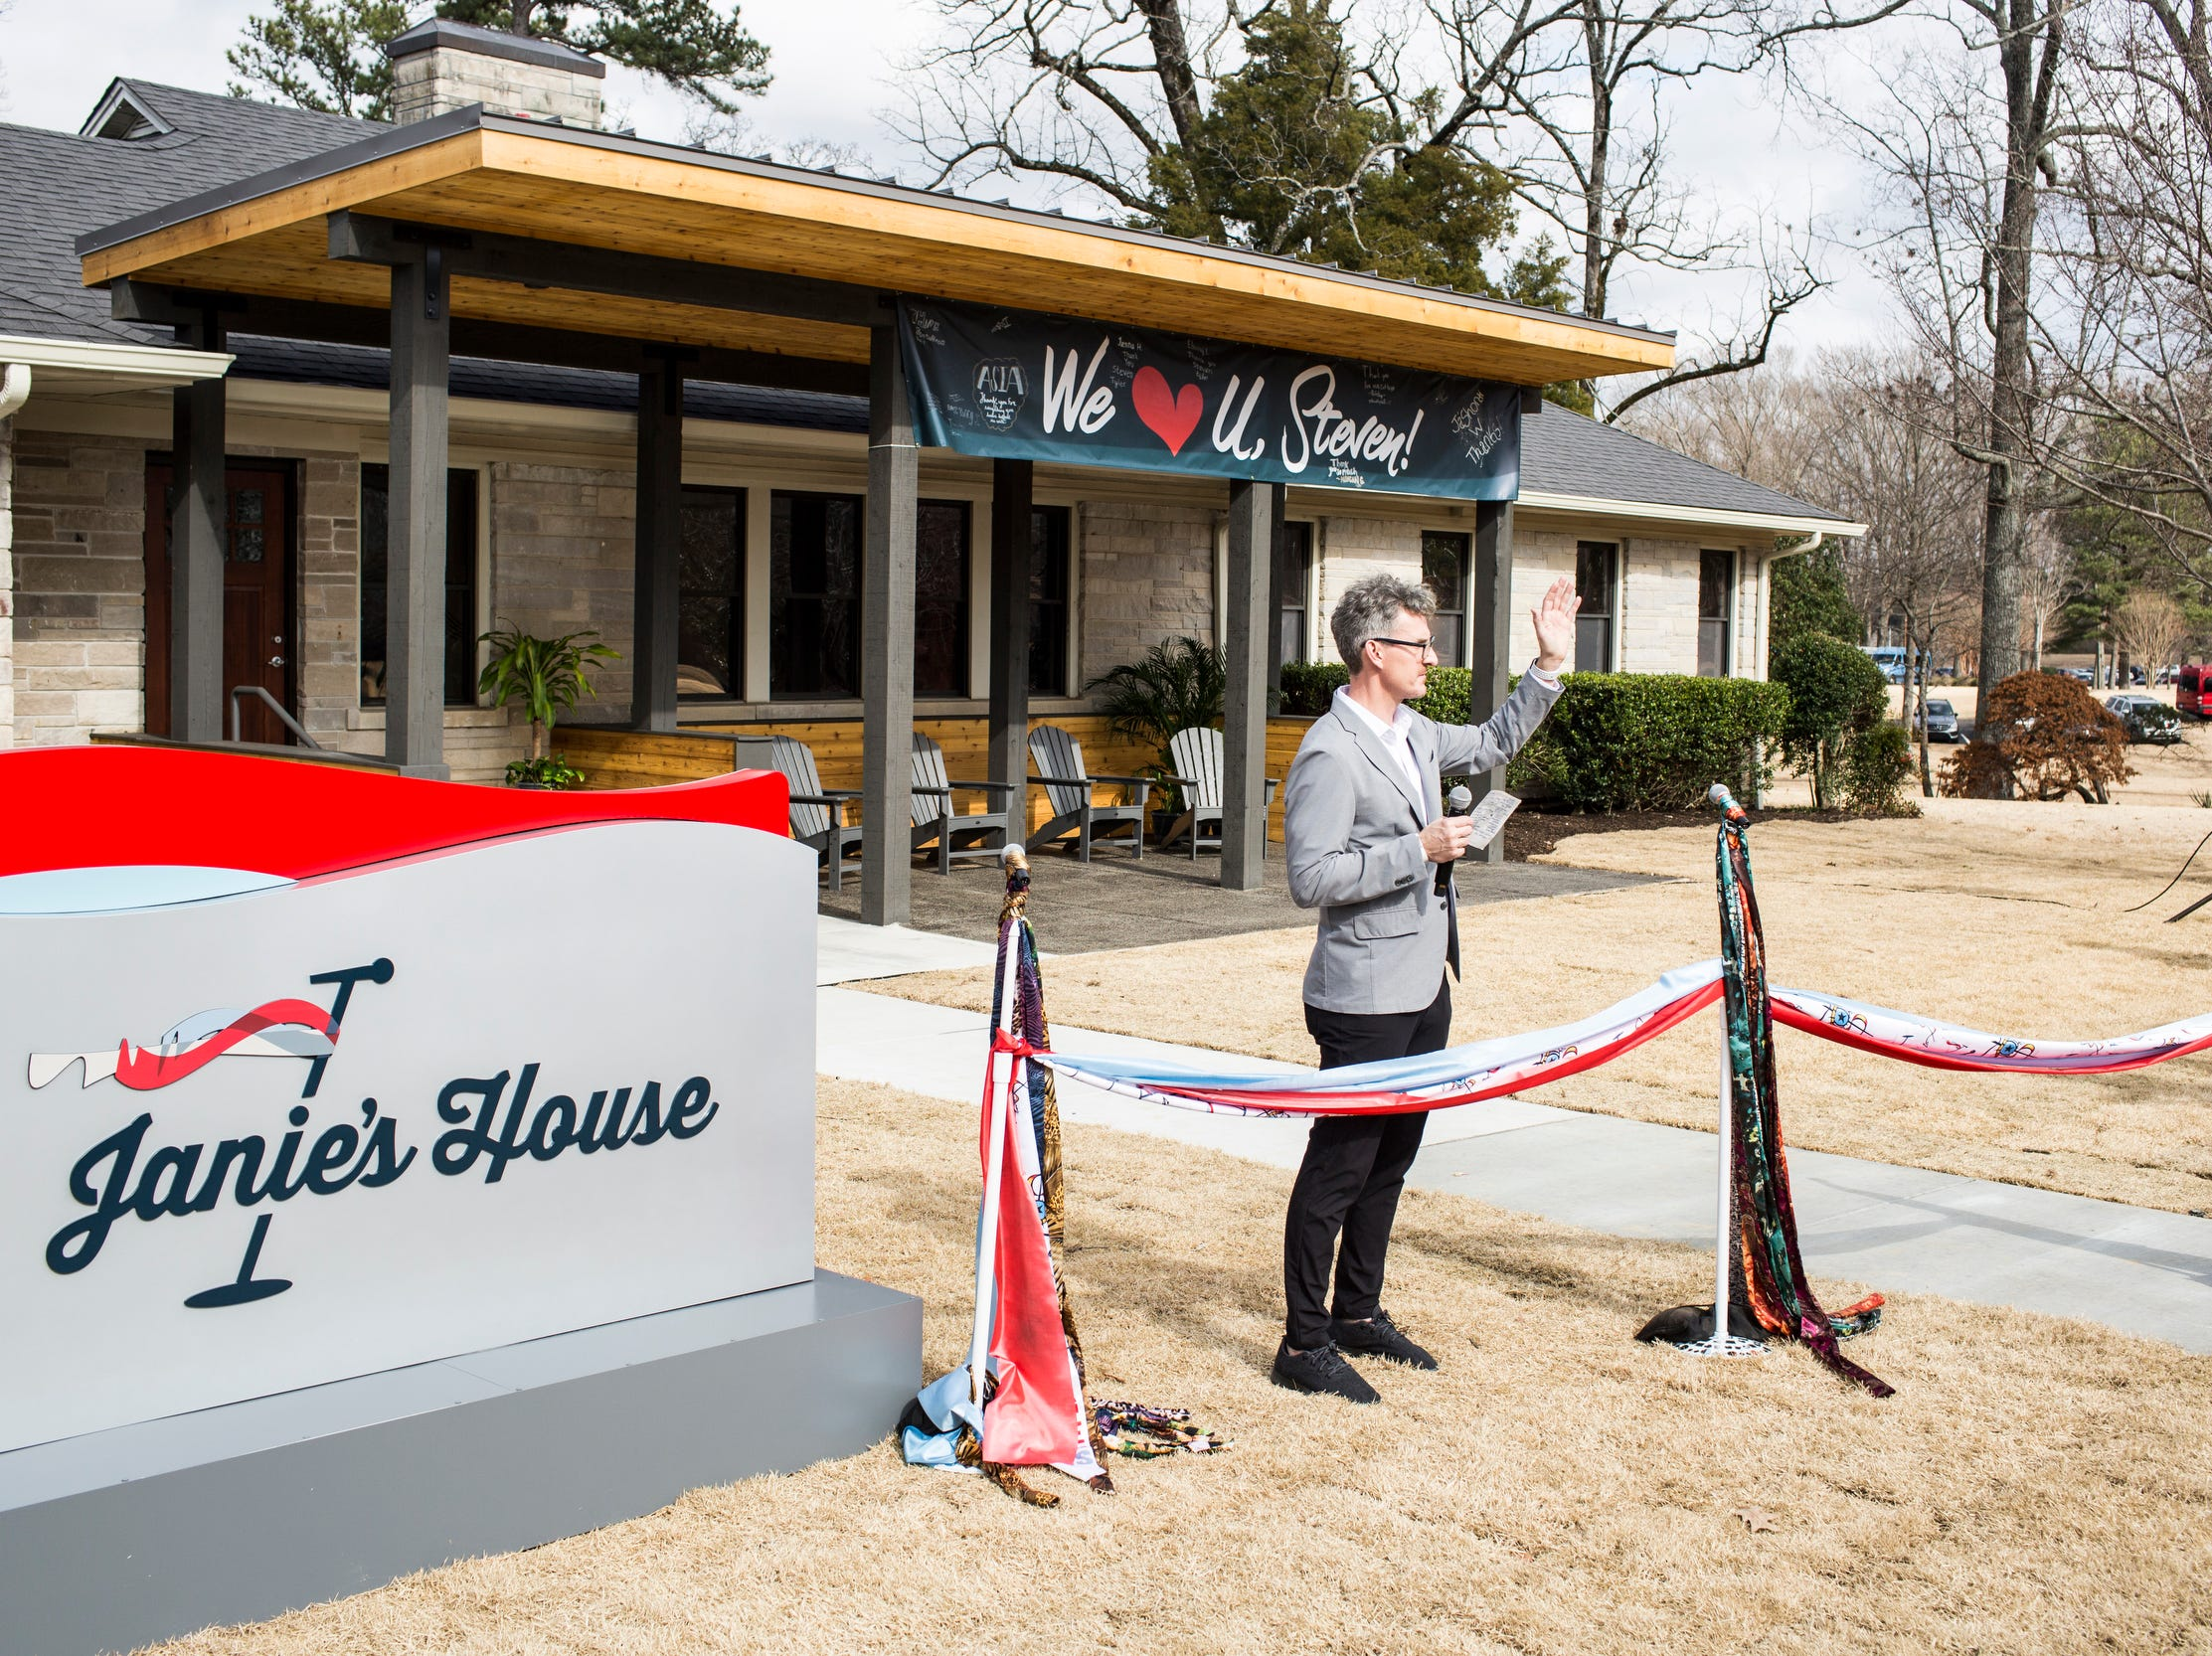 February 04 2019 - Richard Shaw, chief development officer at Youth Villages, speaks during a scarf-cutting celebration at Janie's House at Youth Villages in Bartlett. Janie's Fund paid for the renovations of the existing home for girls and Youth Villages renamed it a Janie's House.